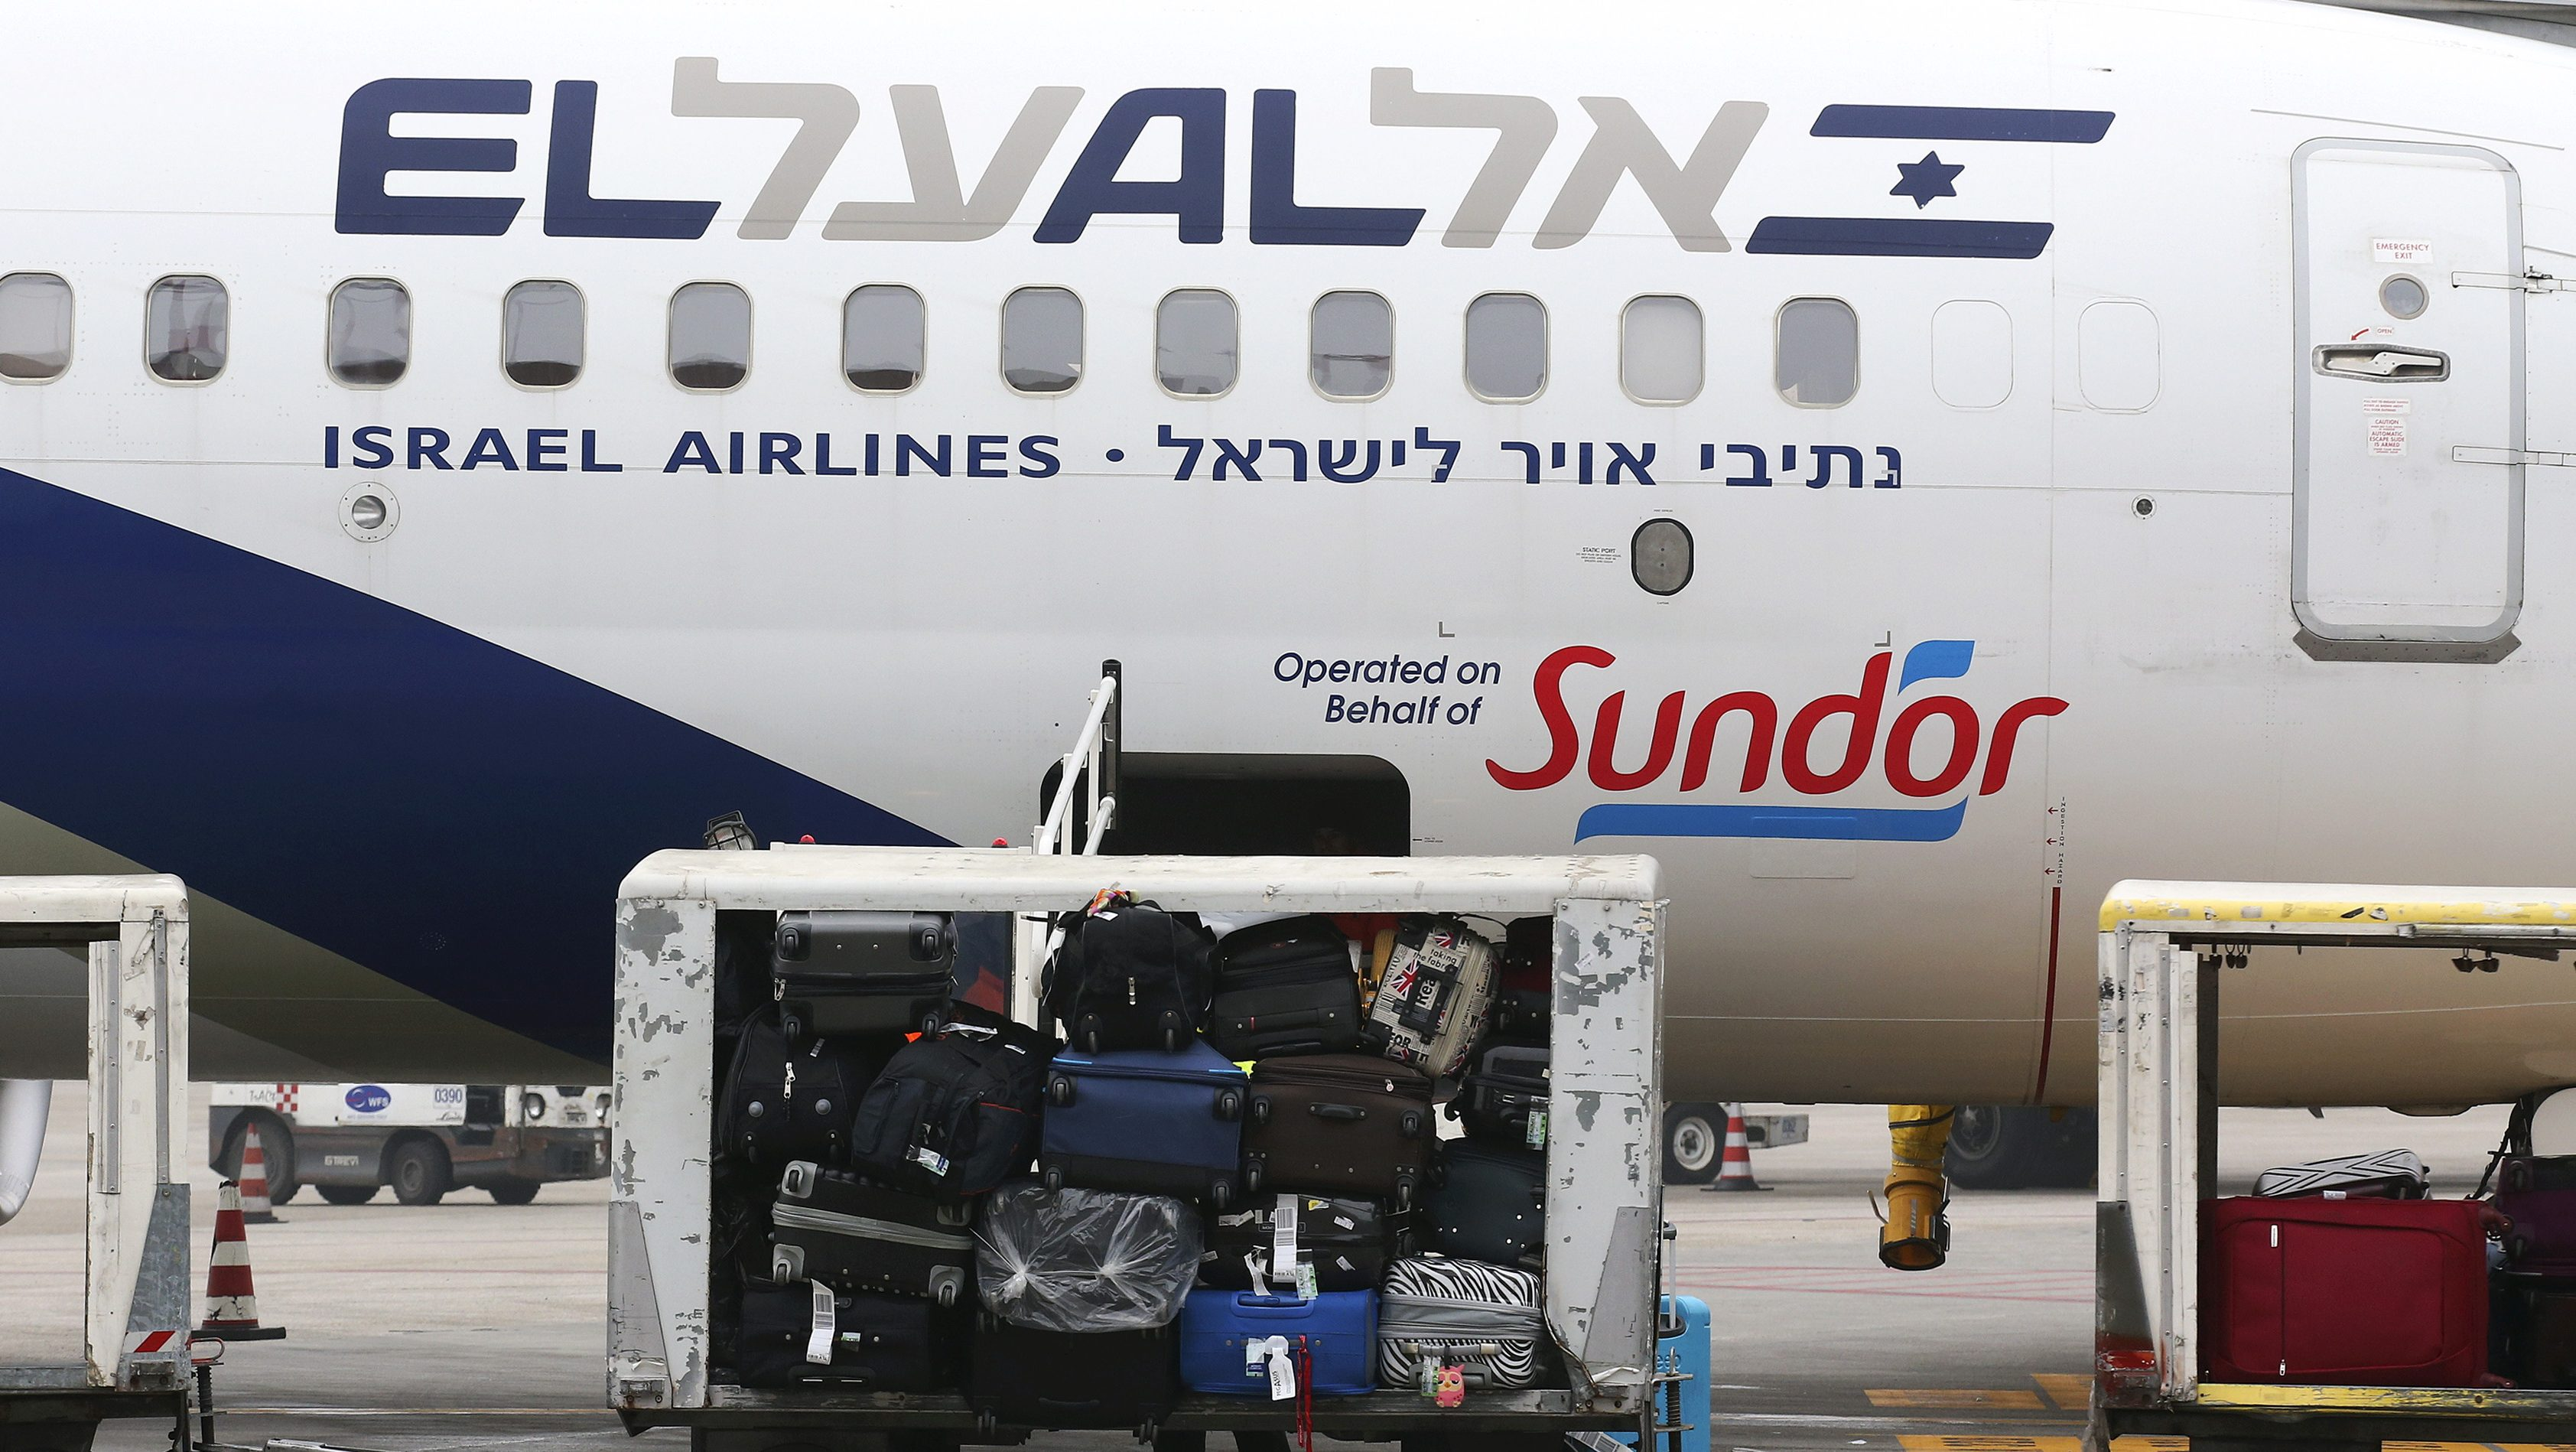 Baggage carts are seen on the tarmac near an El Al Israel Airlines plane at Venice airport February 1, 2016.  REUTERS/Alessandro Bianchi  - RTX24ZF8